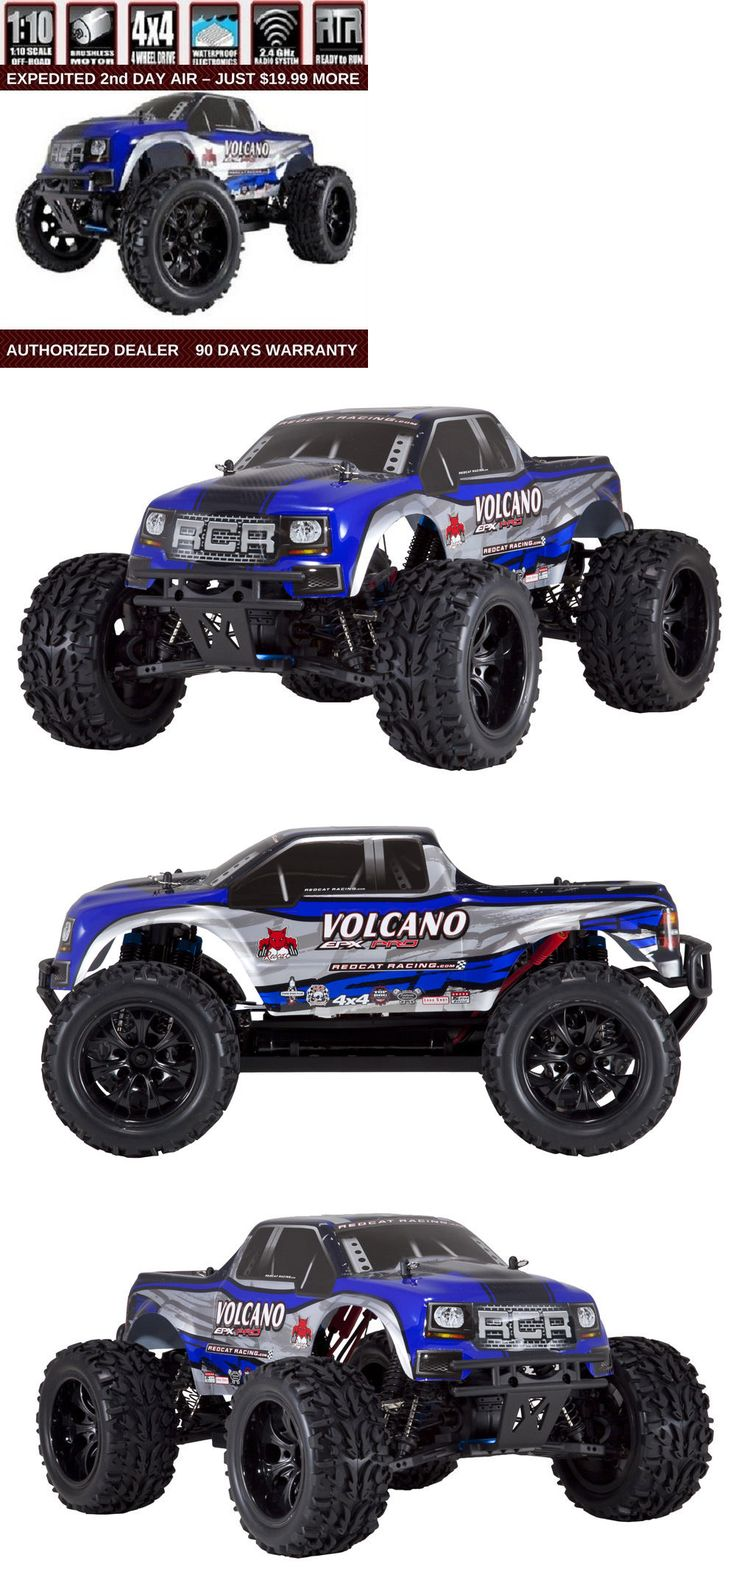 Cars trucks and motorcycles 182183 redcat racing volcano epx pro 1 10 scale electric brushless